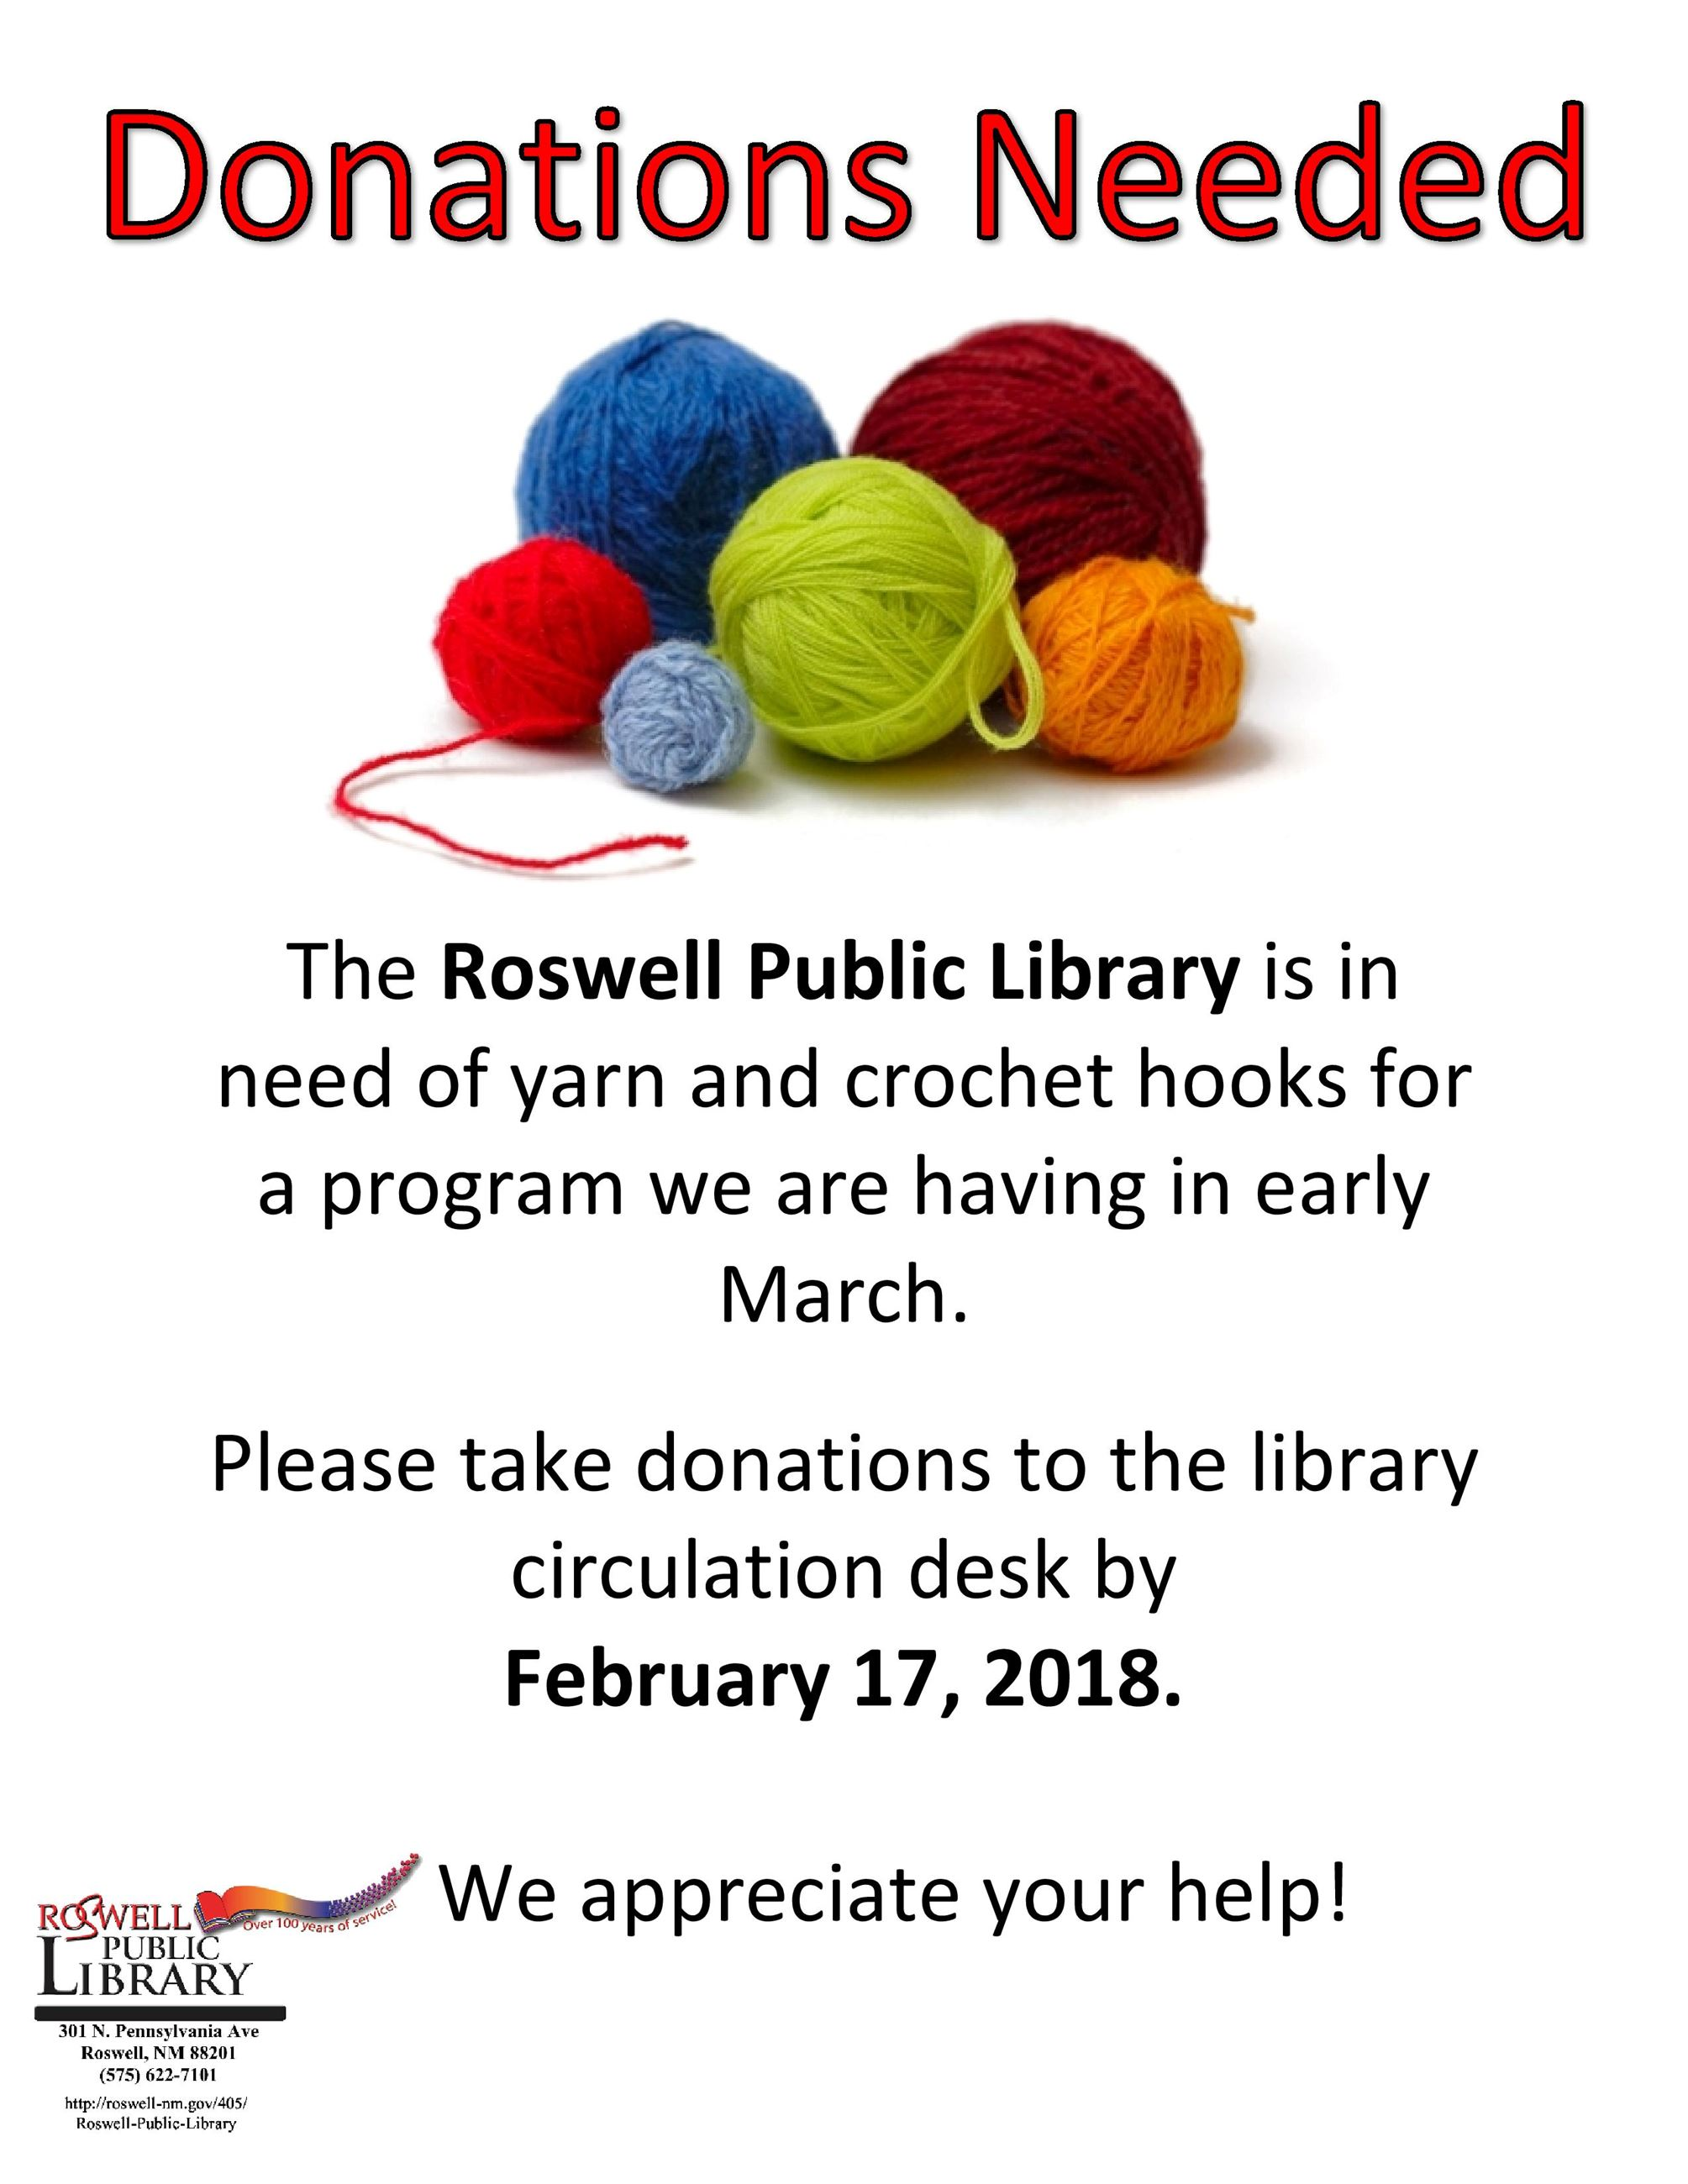 yarn and crochet hooks donation needed at the library